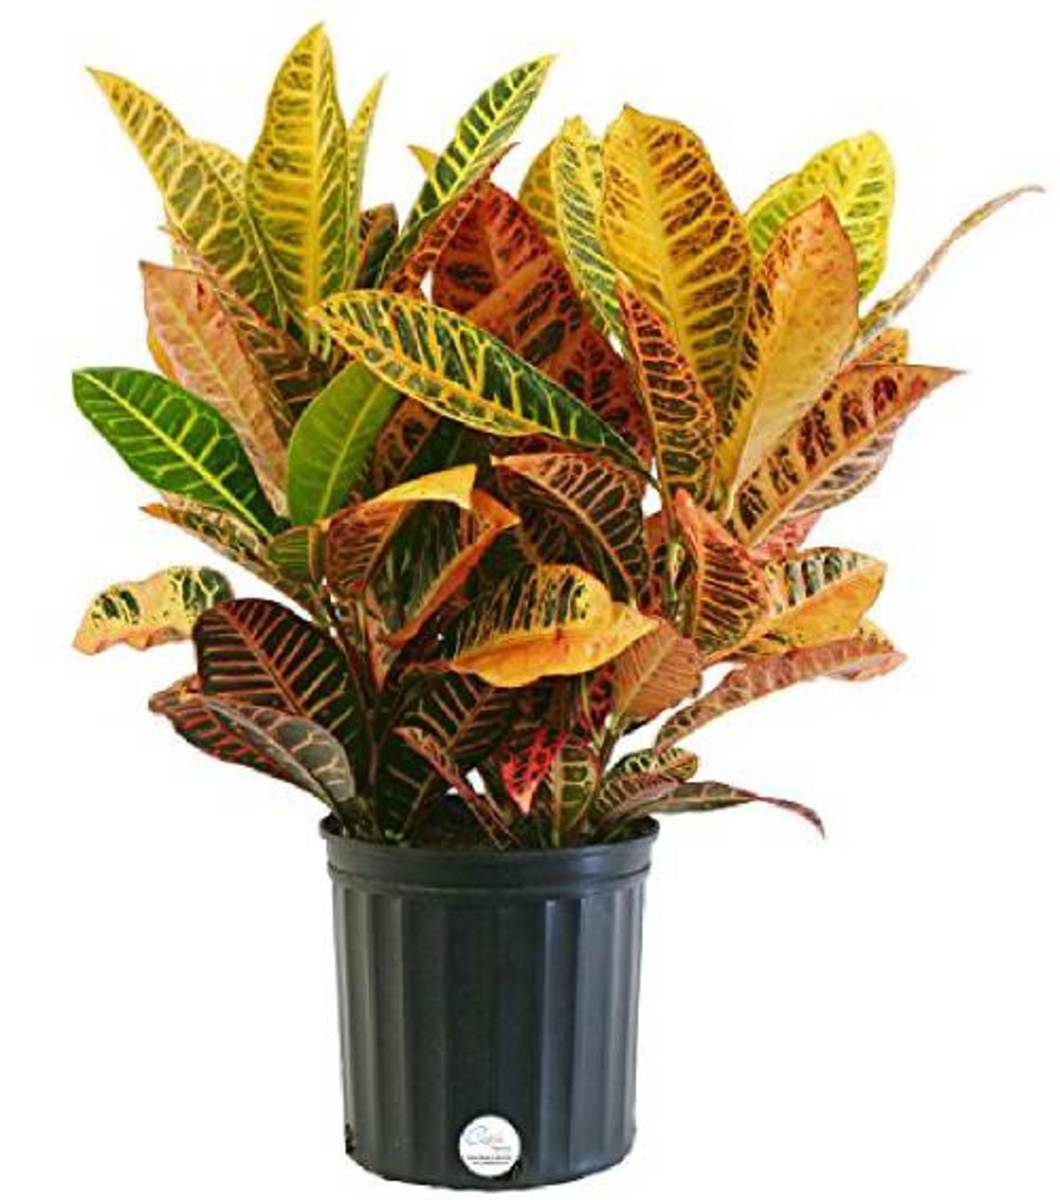 Crotons have a variety of vibrant colored leaves.